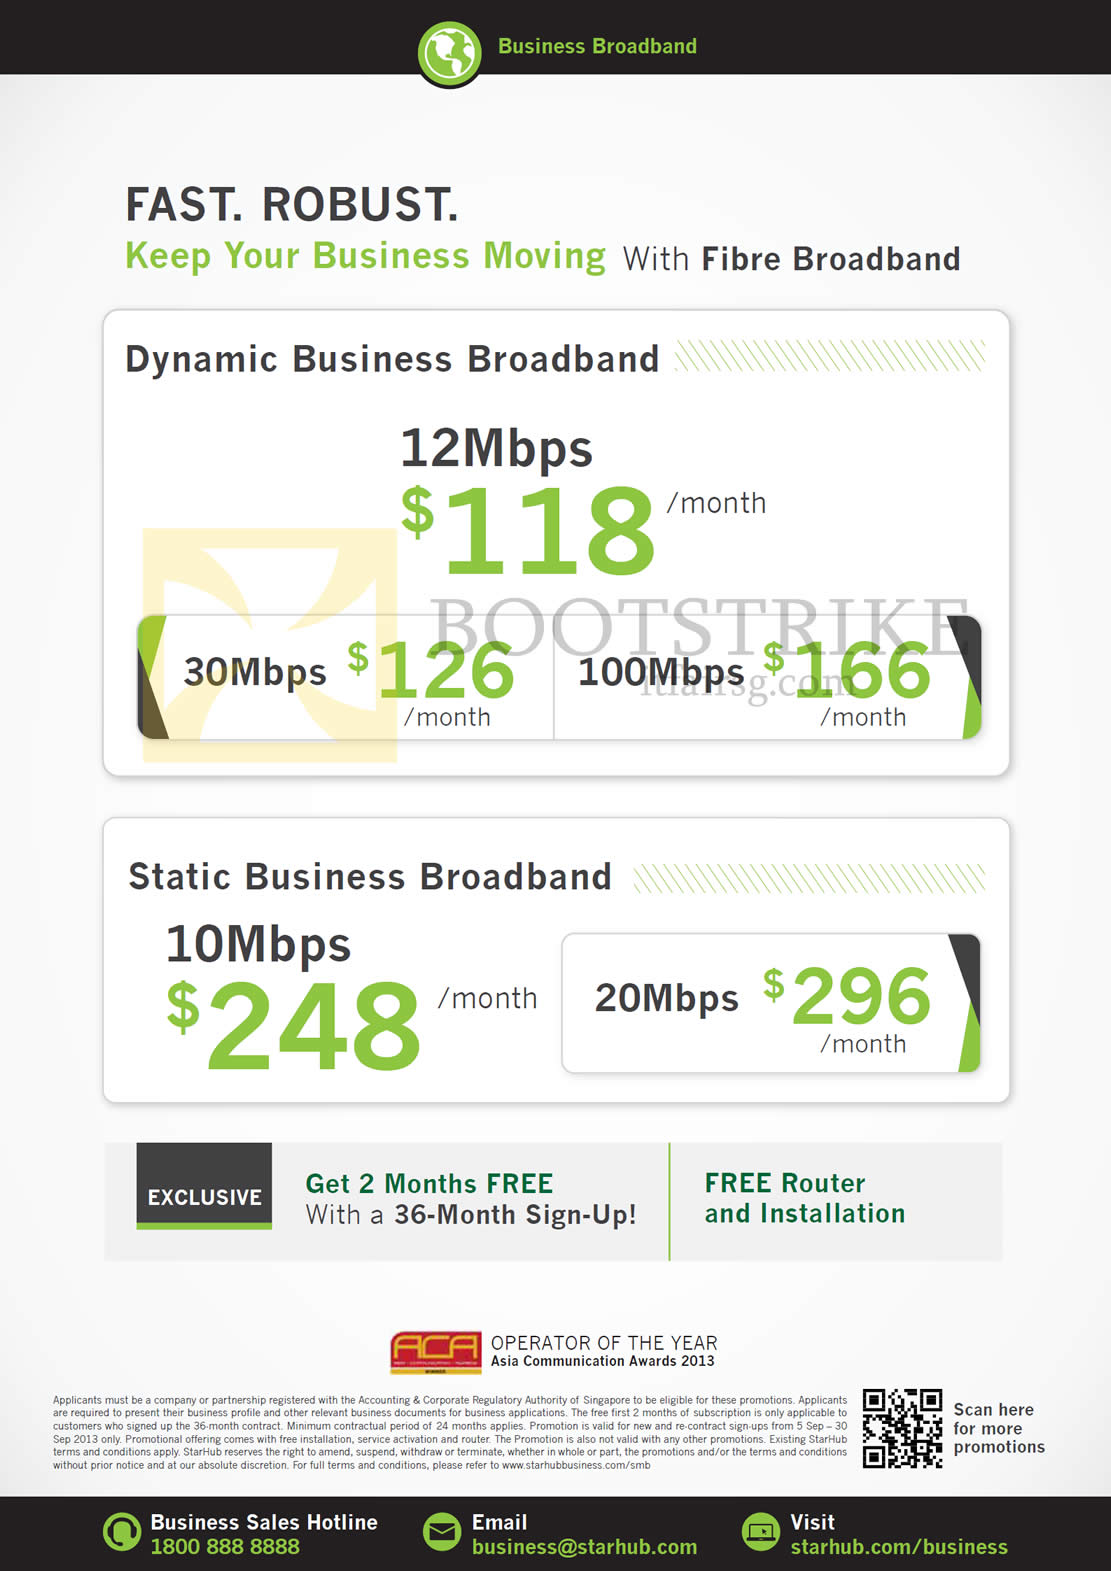 COMEX 2013 price list image brochure of Starhub Business Broadband Dynamic 12Mbps, Static 10Mbps